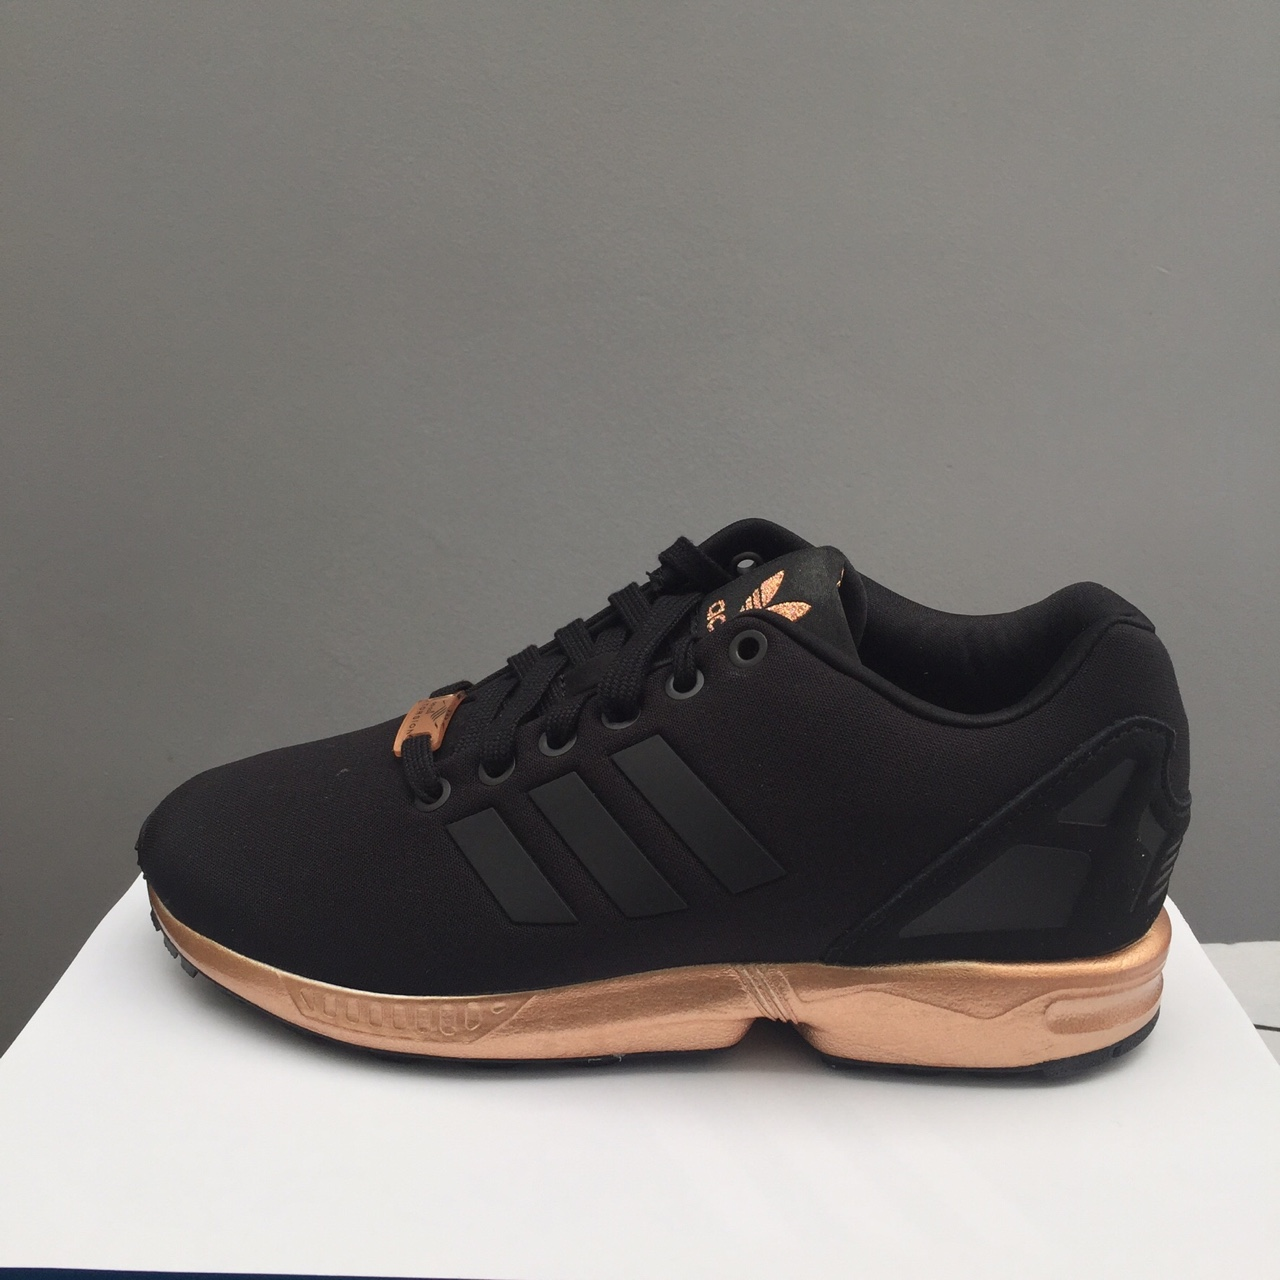 info for 0e36a 539b8 Adidas ZX Flux rose gold. Brand new with box UK5... - Depop